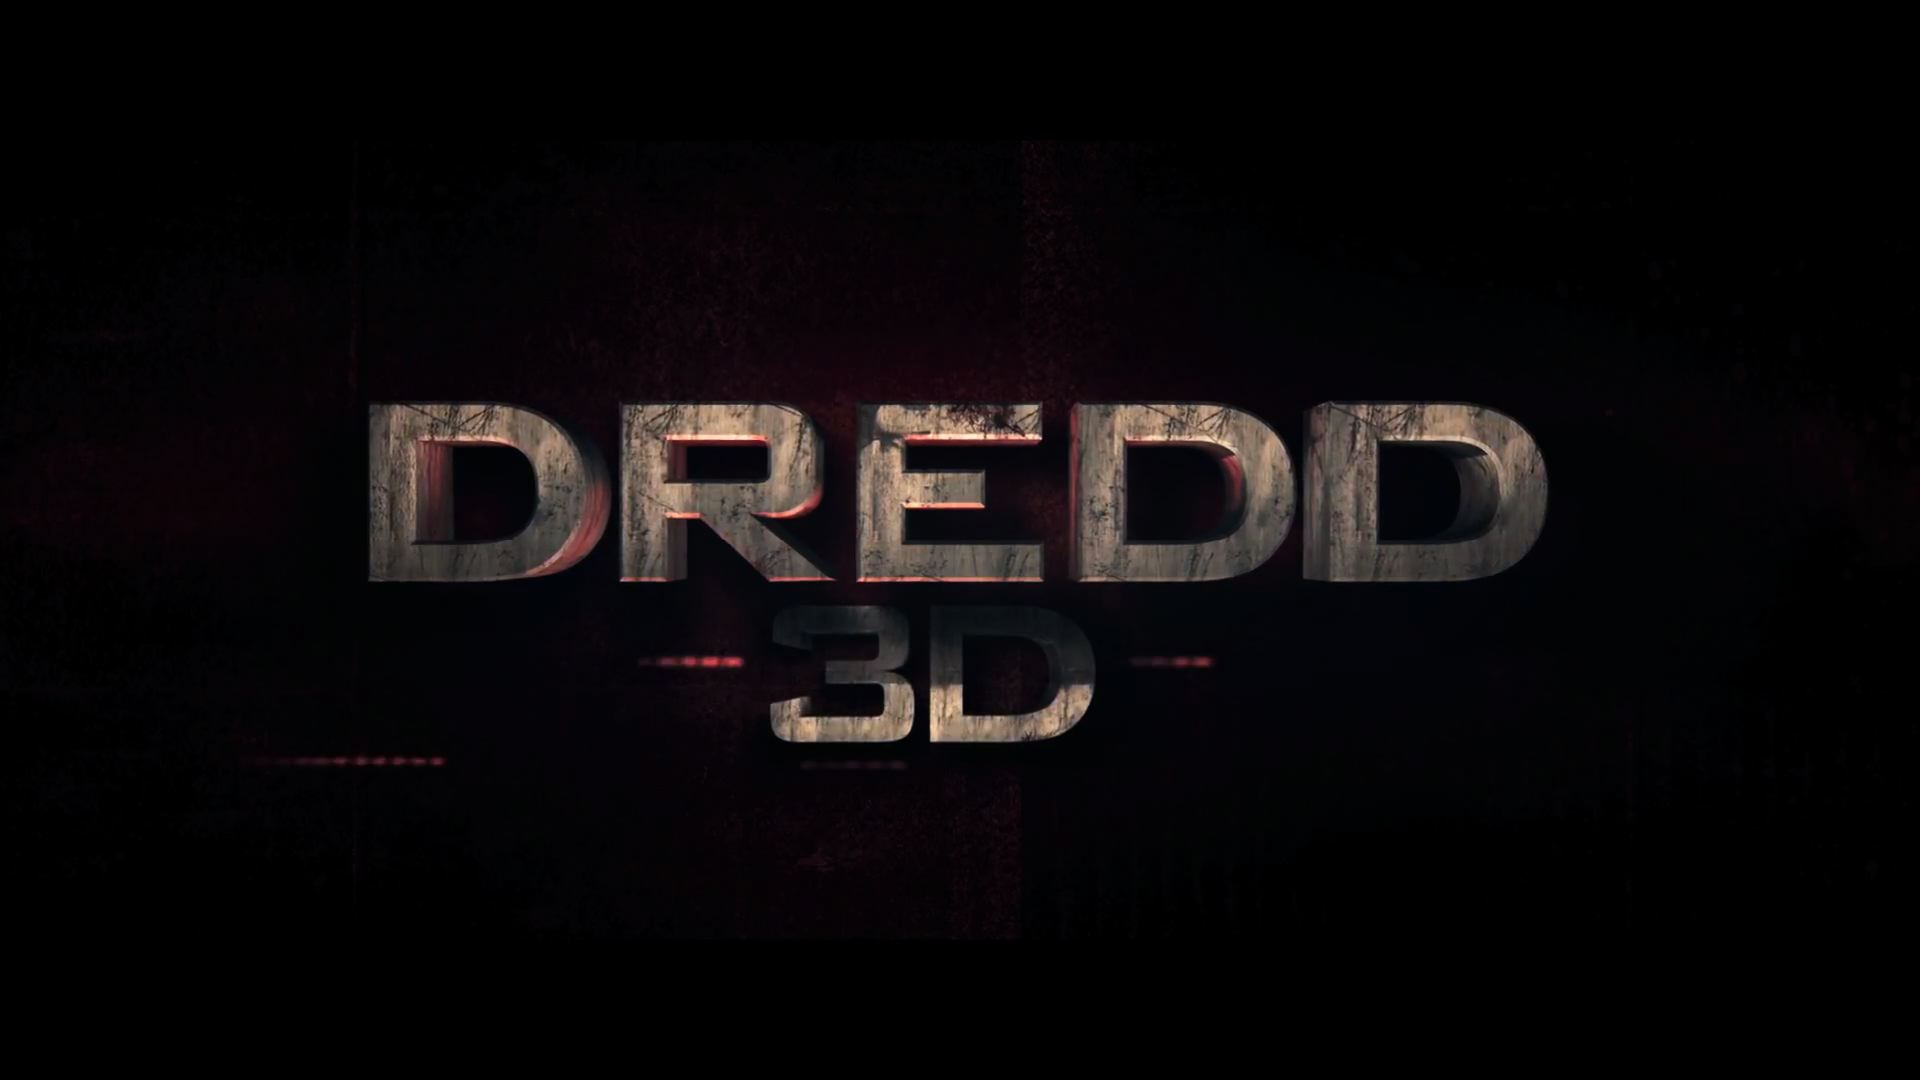 Dredd (2012): You Don't Have to Dread Seeing Dredd!